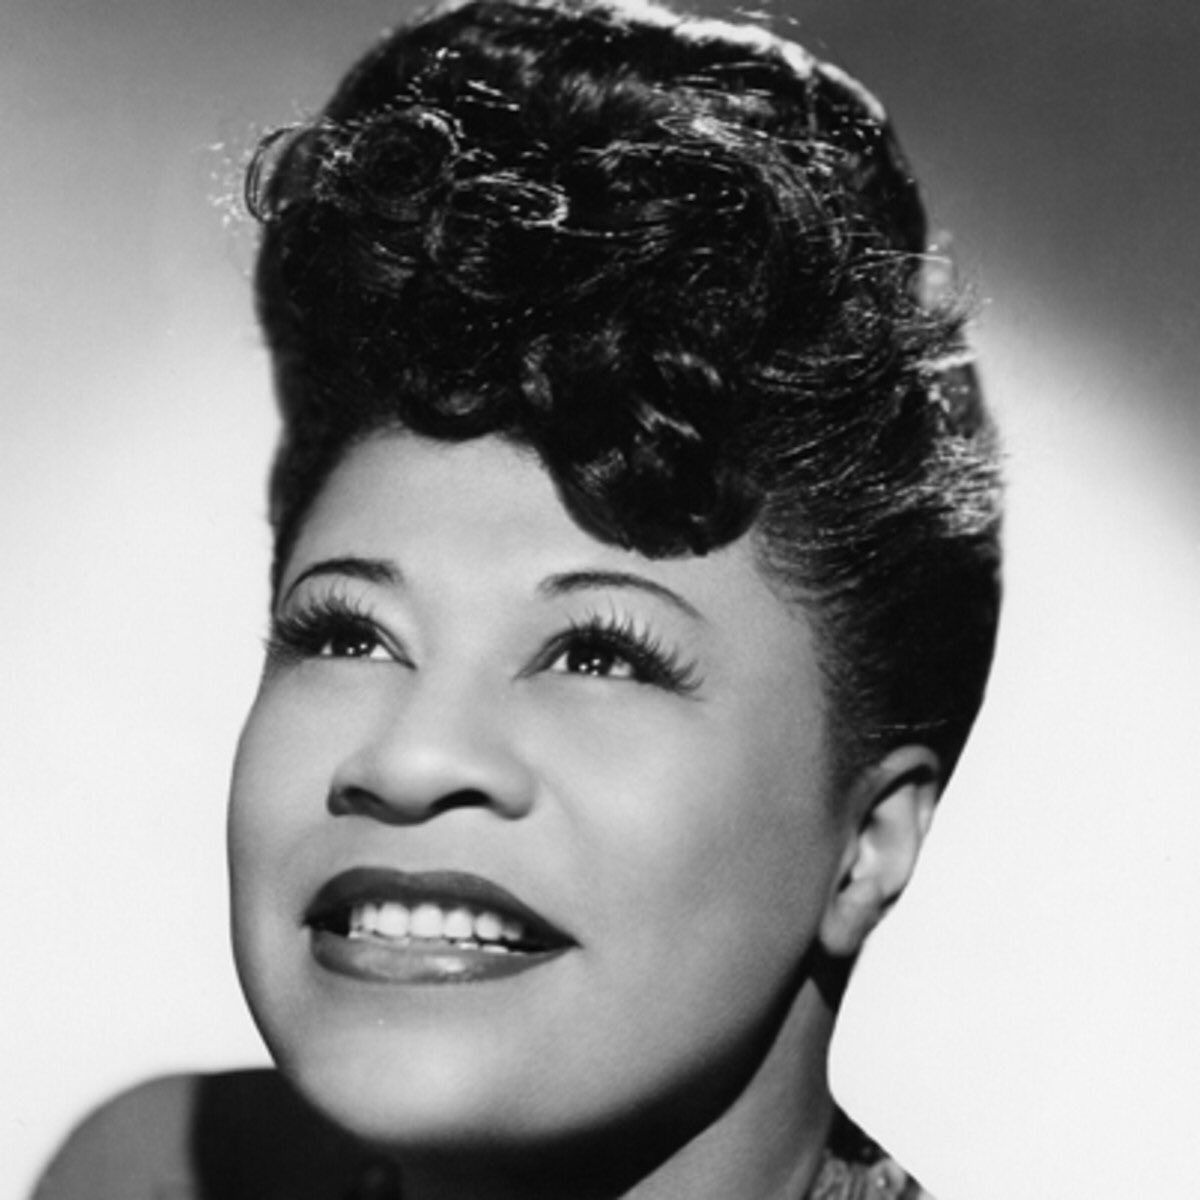 Happy Birthday Ella #Ella100 Jazz wouldn't be the same without you. ❤ https://t.co/63AWWbnlWk